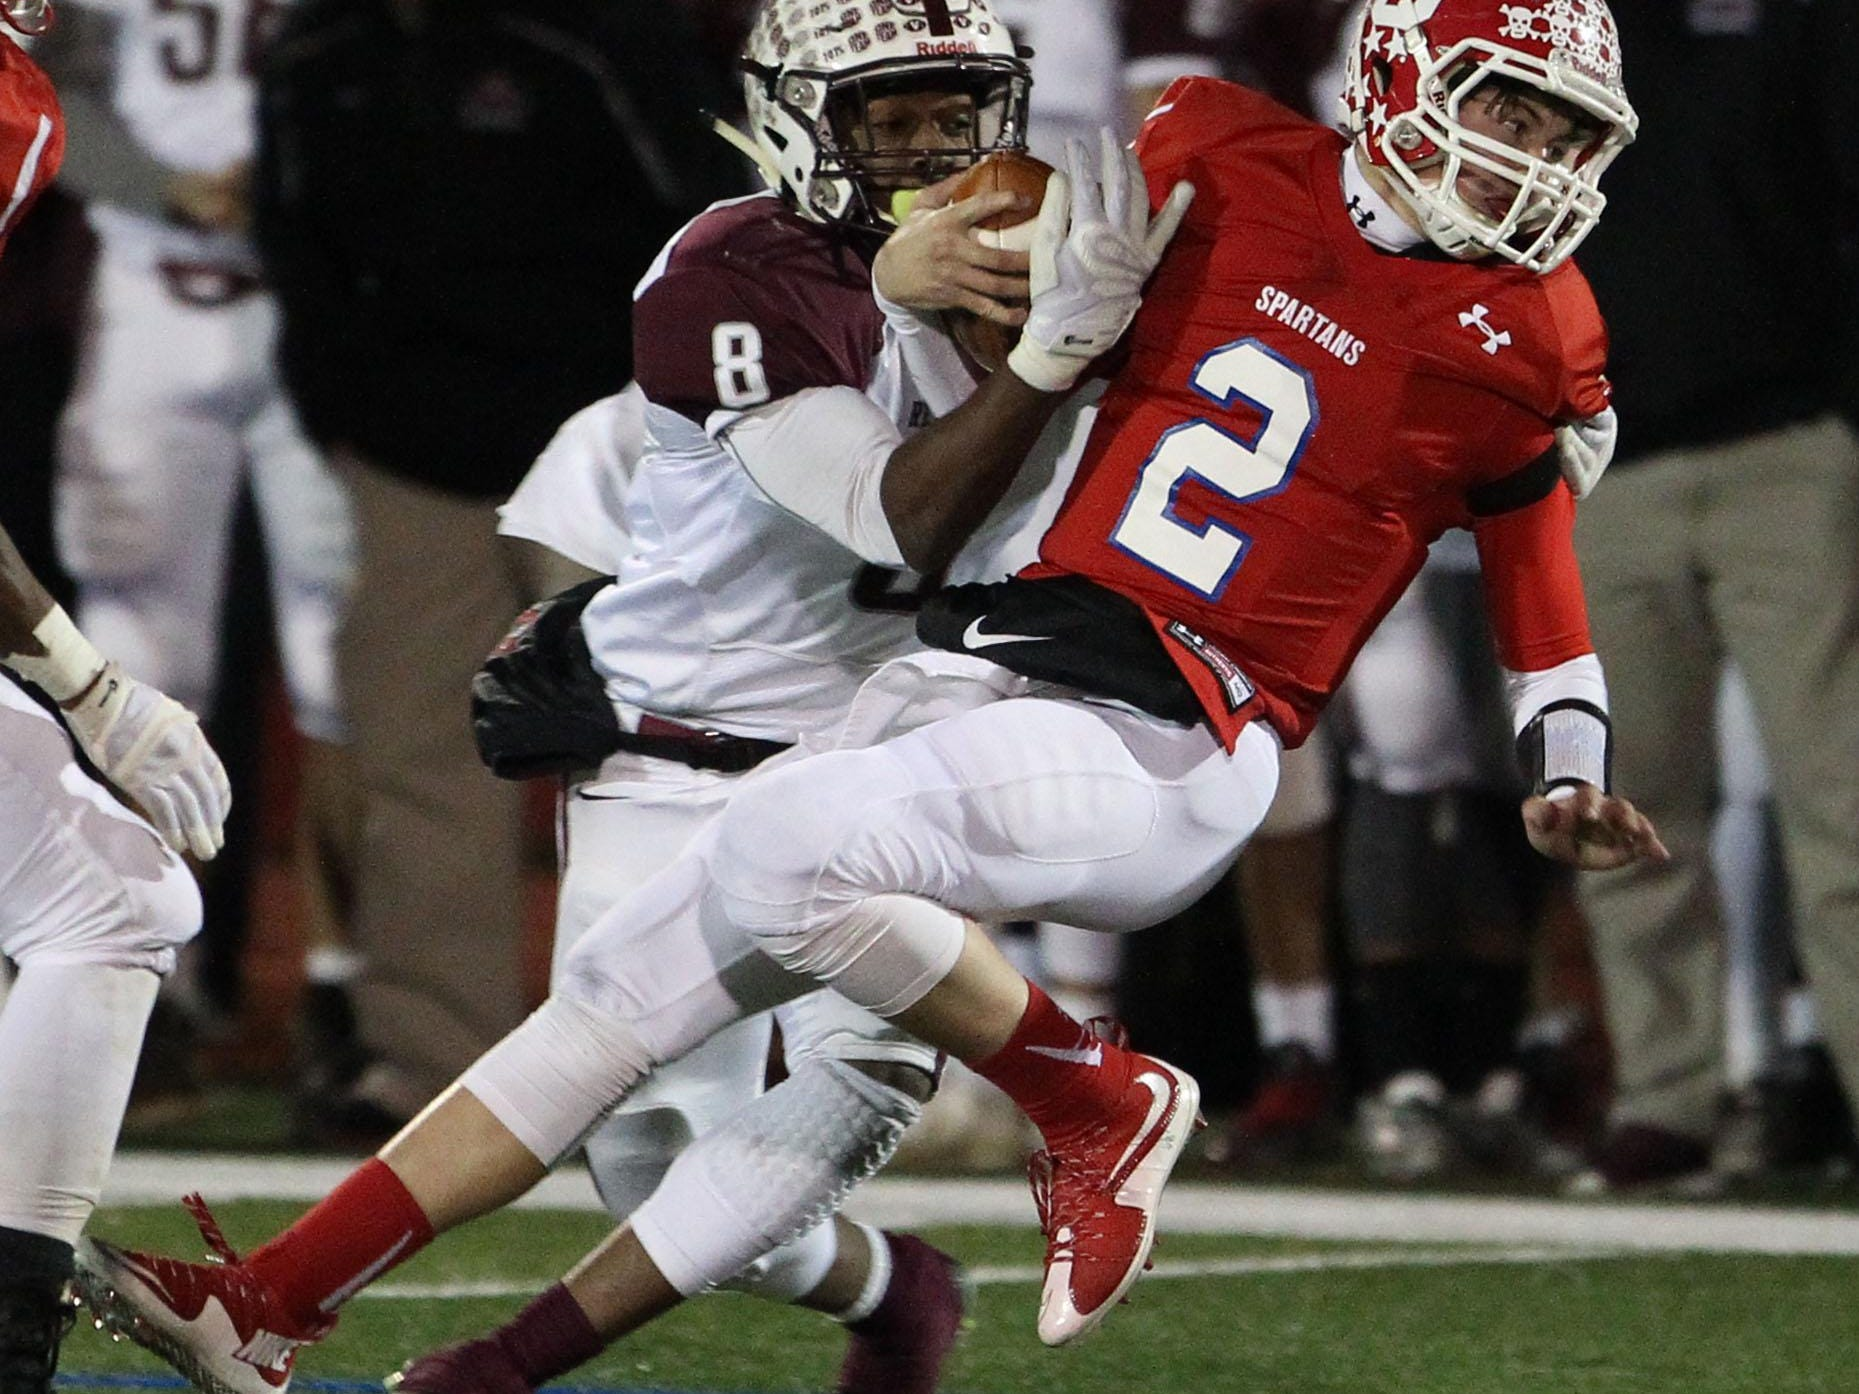 Kenny Pickett (2) of Ocean Twp. is tackled by Chris Outterbridge (8) of Red Bank Regional during NJSIAA Central Jersey Group III semifinal game at Ocean Twp. High SchoolOcean Twp.,NJ. Friday, November 20, 2015.Noah K. Murray-Special for the Asbury Park PressASB 1121 Ocean